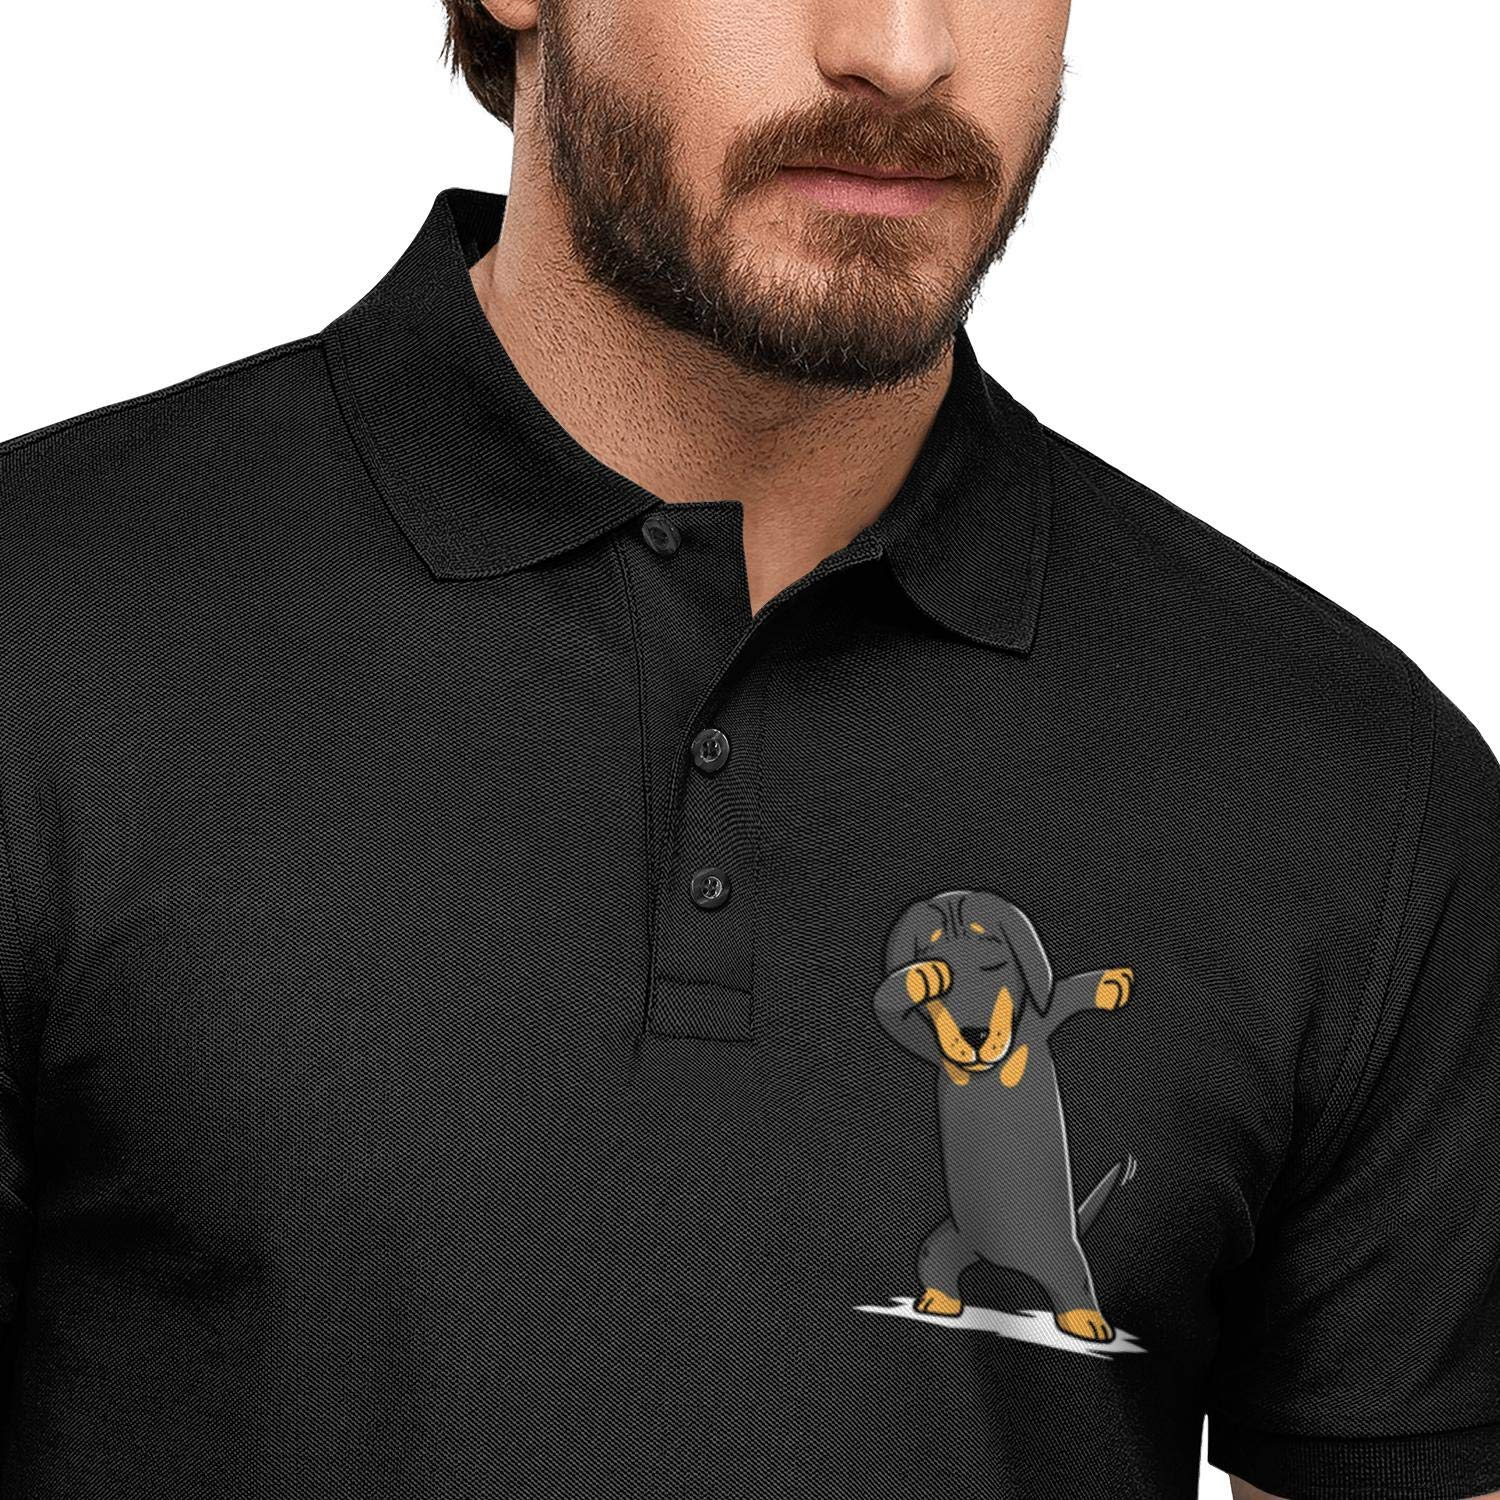 WYFEN Men Printed Polo Shirt Dabbing Dachshund Dog Dancing Funny Short Sleeve Tee